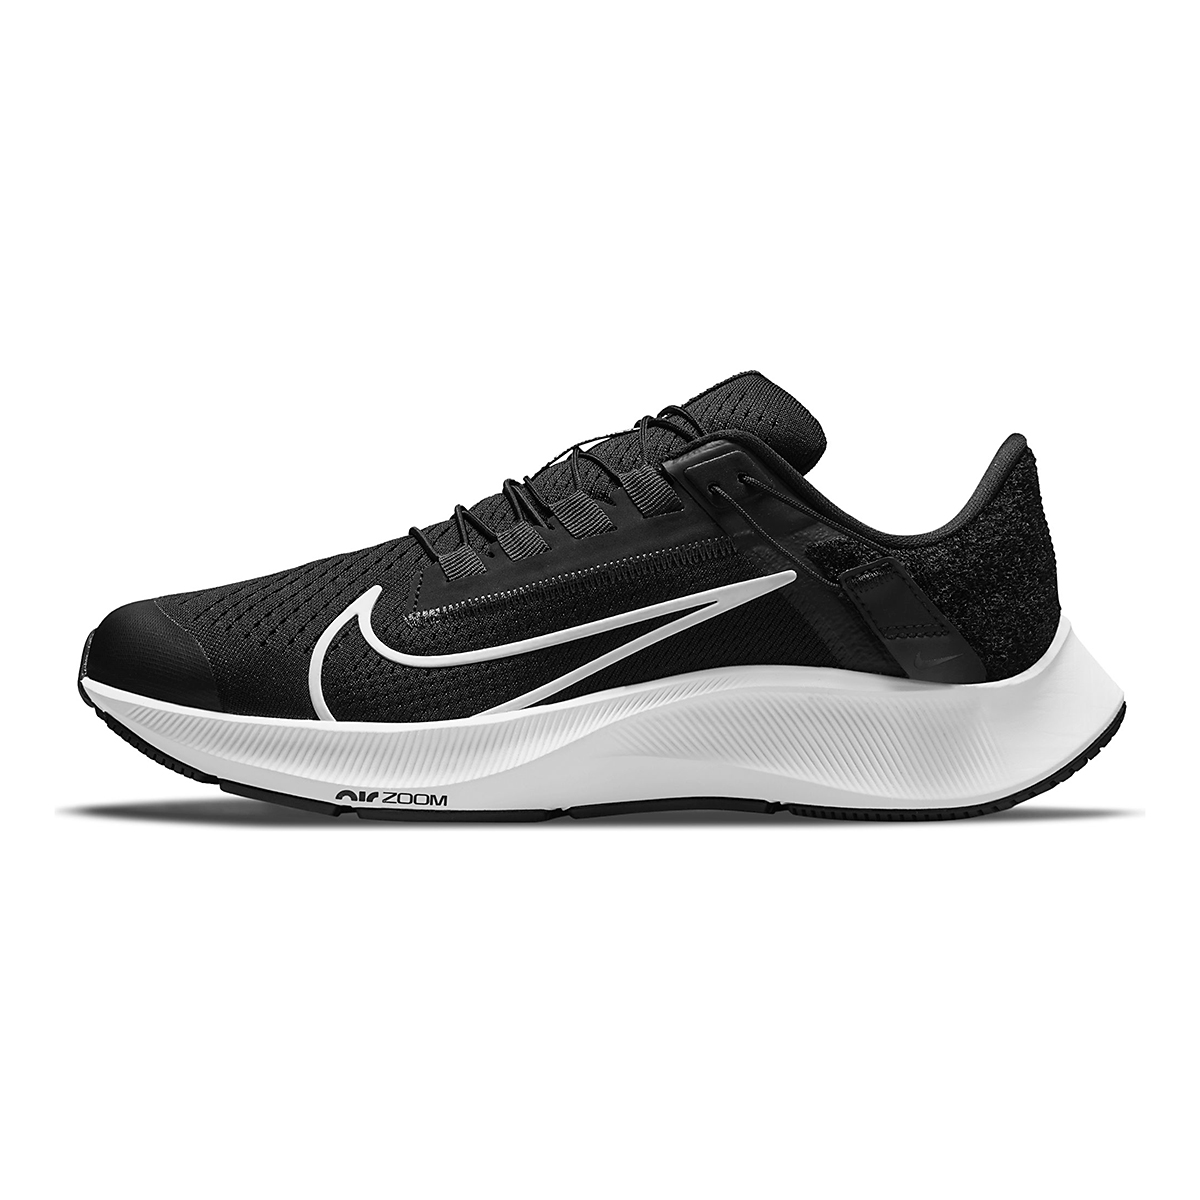 Women's Nike Air Zoom Pegasus 38 Flyease Running Shoe - Color: Black/White/Anthracite - Size: 5 - Width: Regular, Black/White/Anthracite, large, image 2